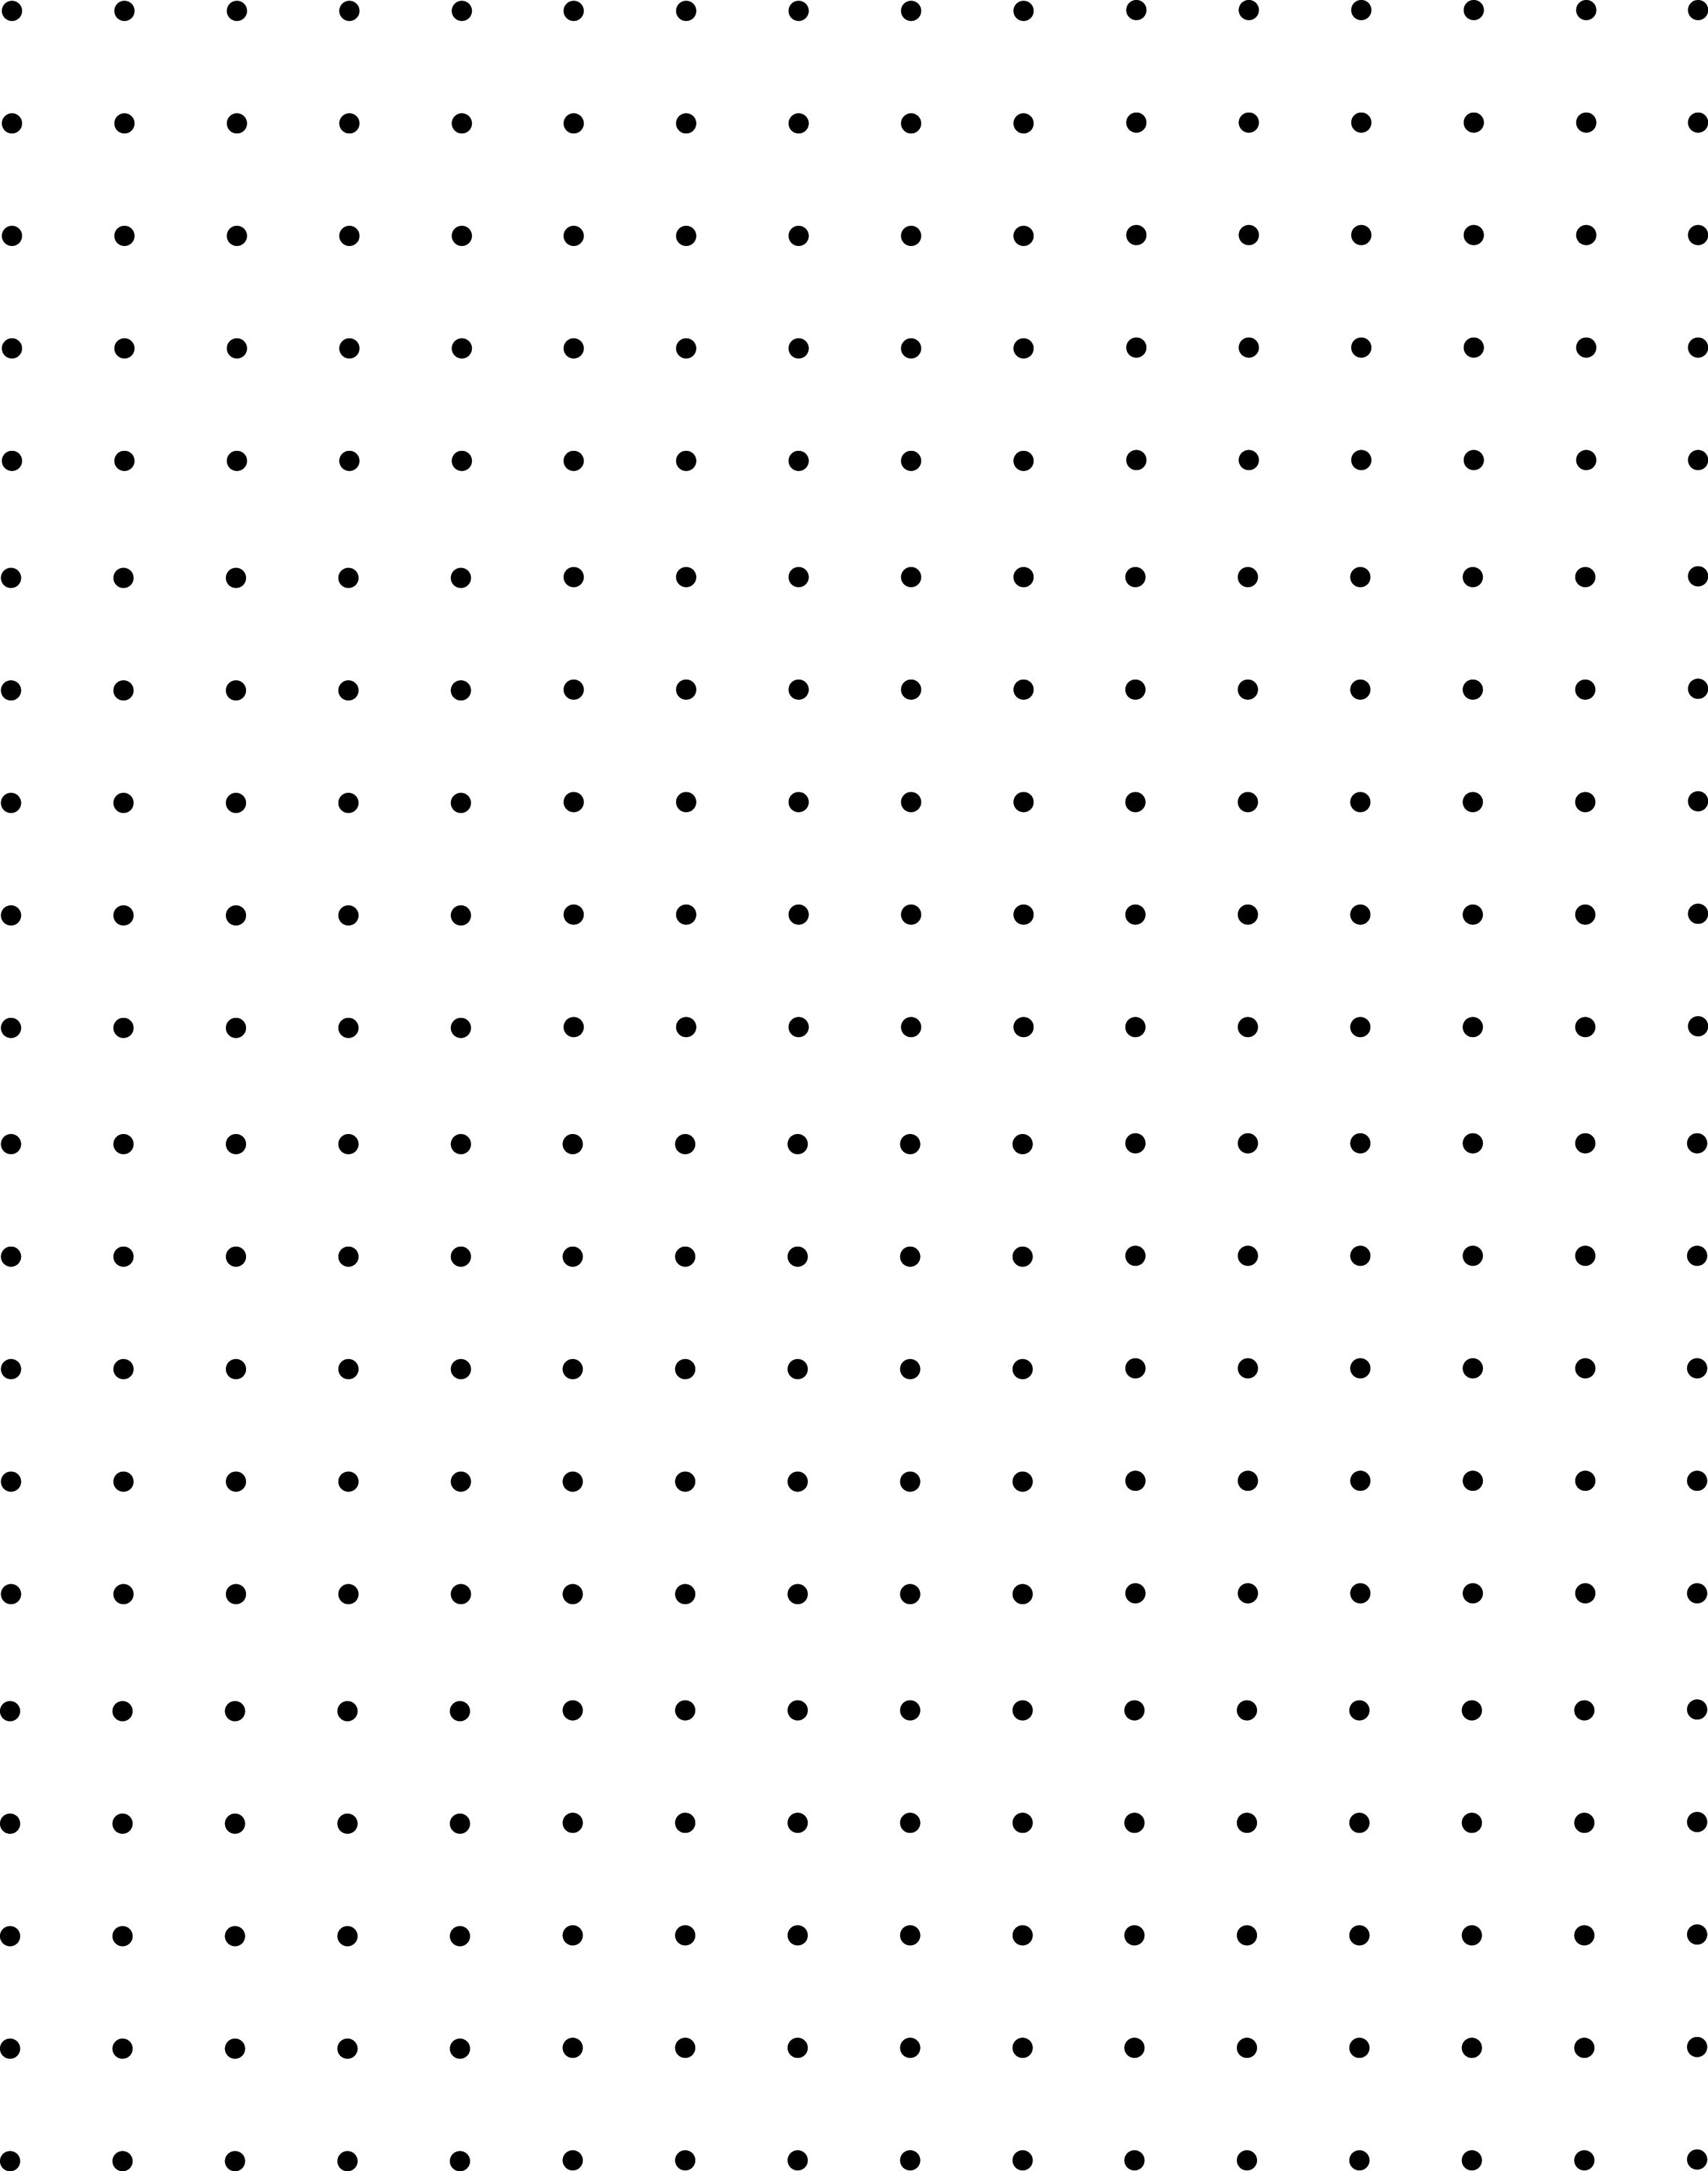 square dot graph paper